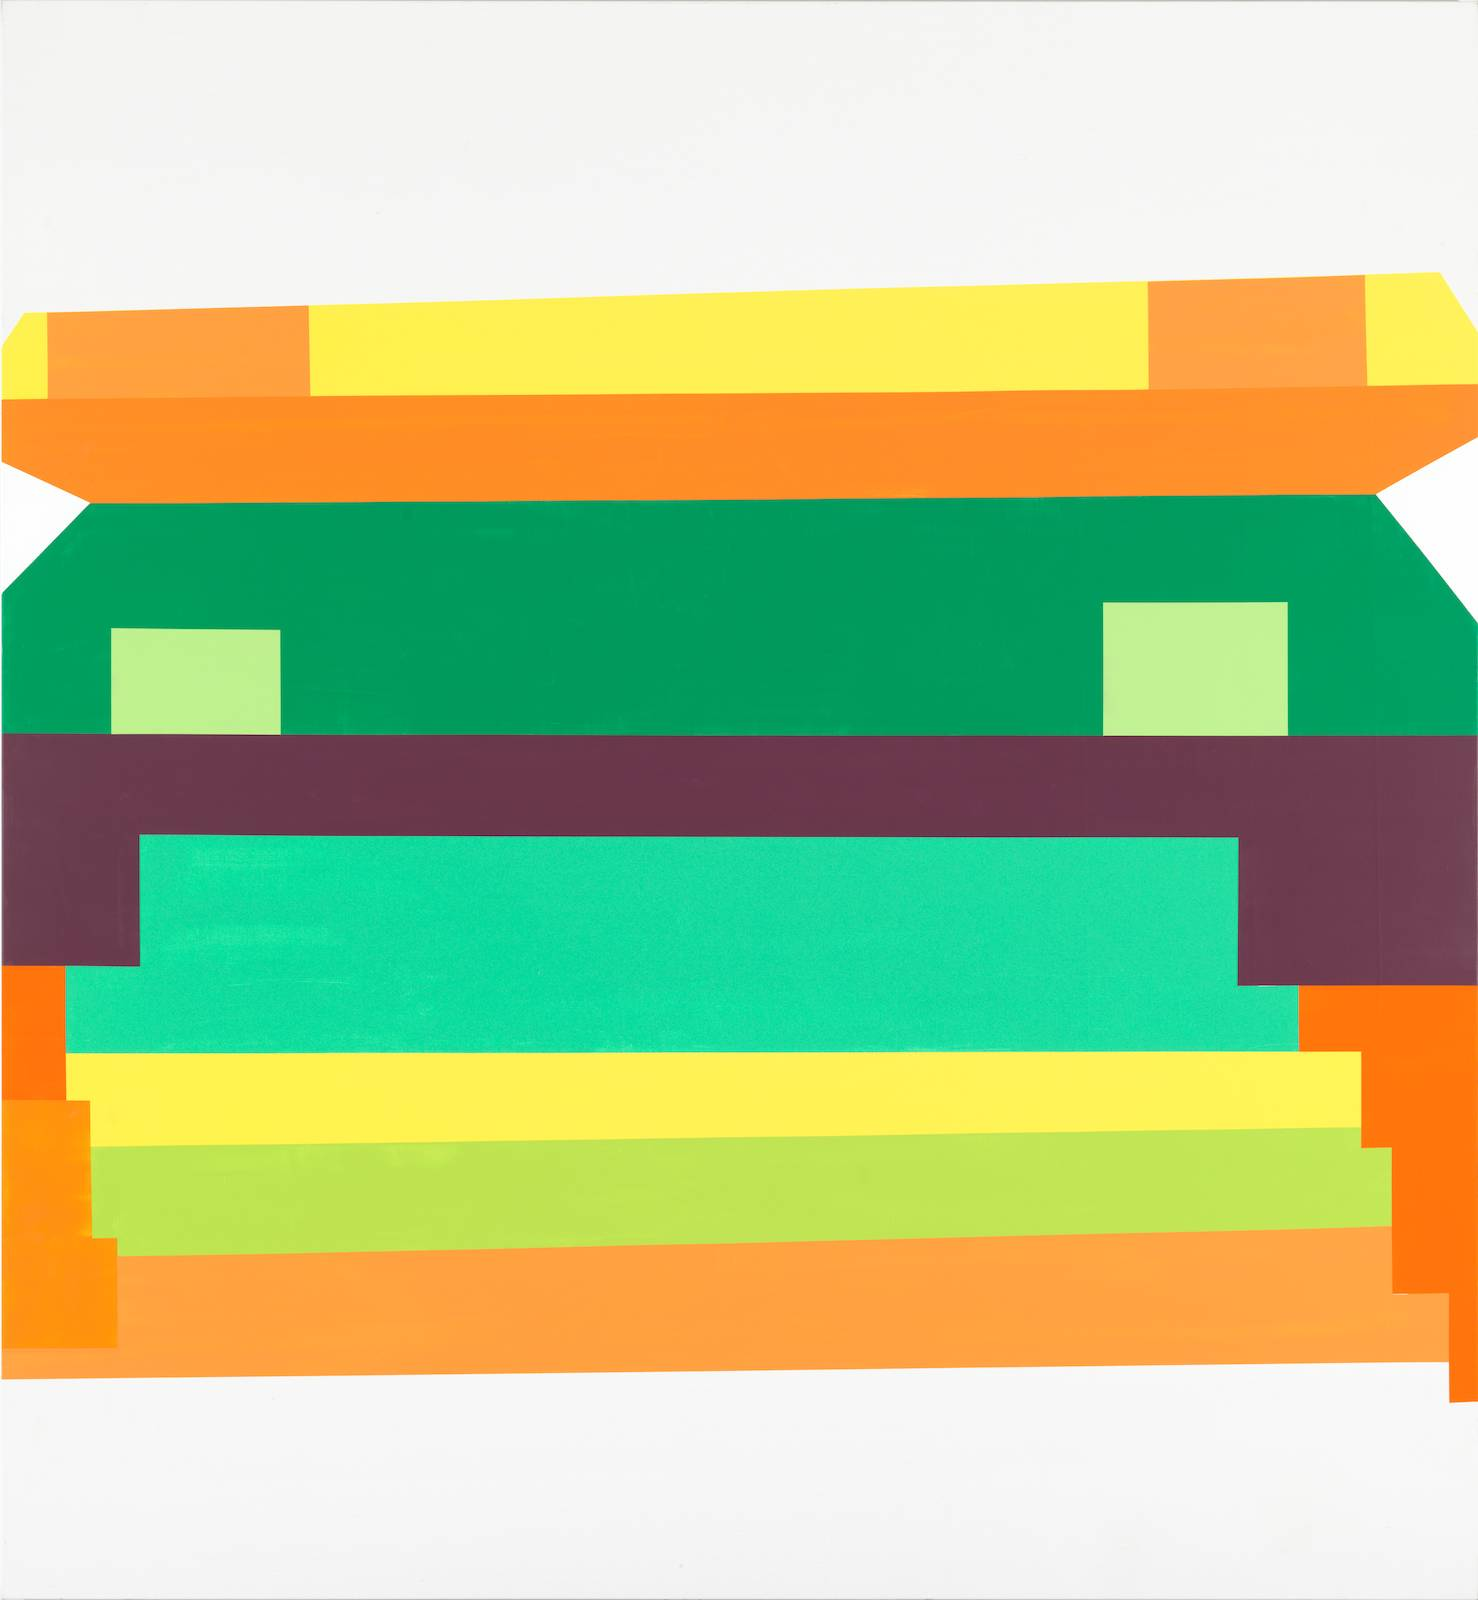 Panorama/The Second Generation, No.03, 2011/12, acrylic on canvas, 265 x 245 cm